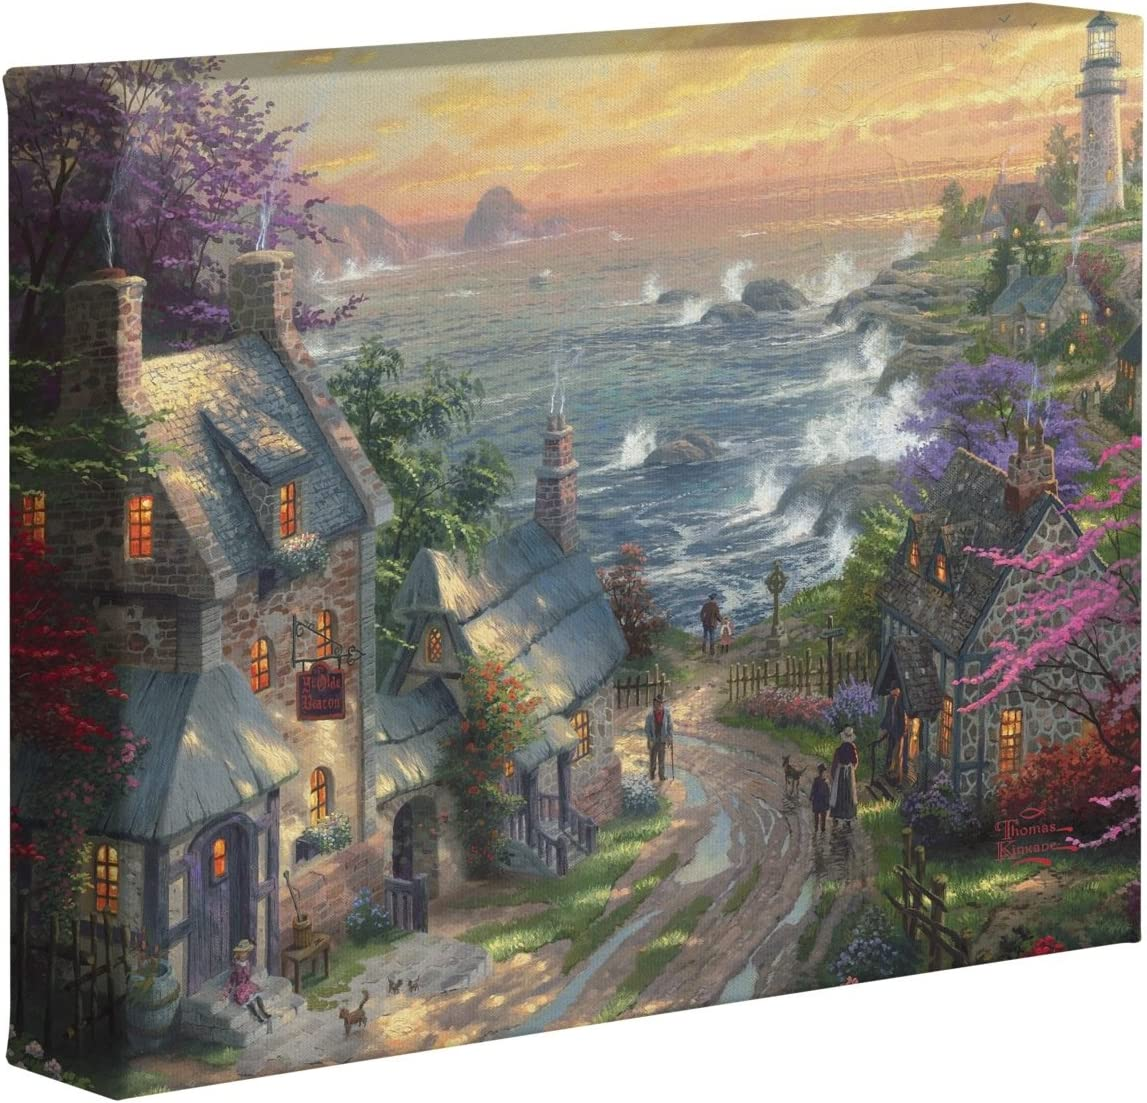 Thomas Kinkade The Village Lighthouse 8 X 10 Gallery Wrapped Canvas